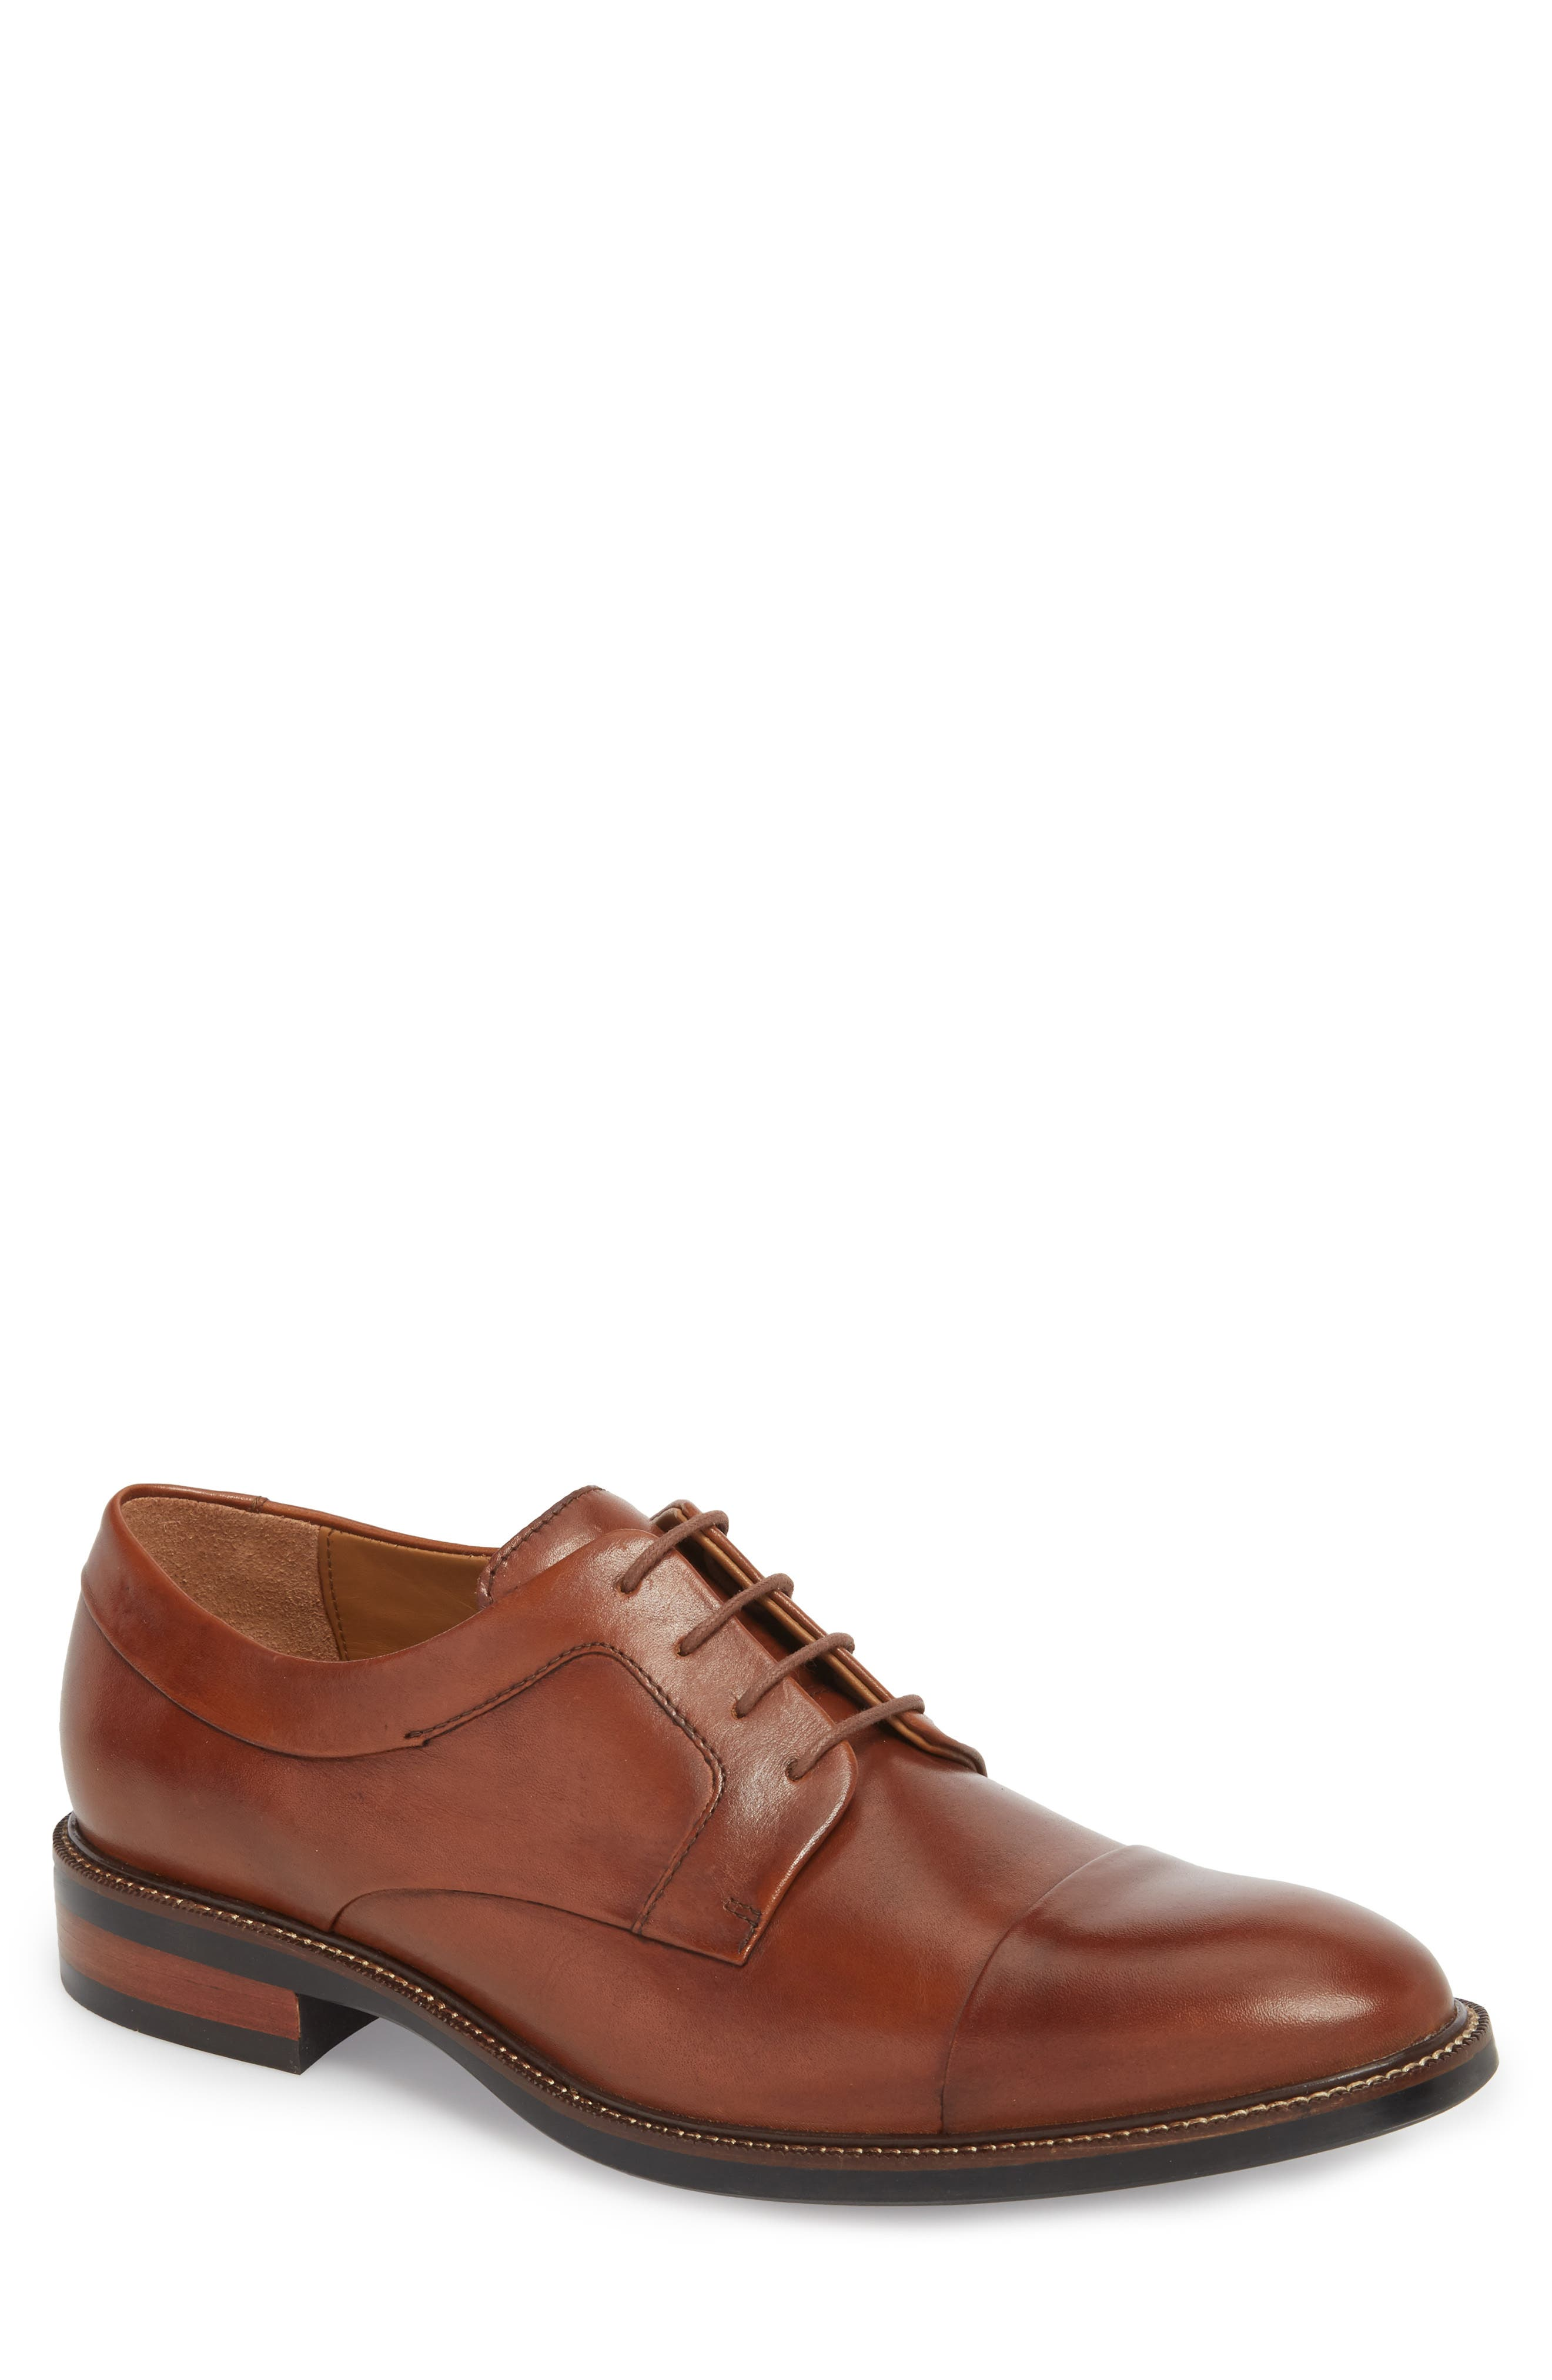 Warren Cap Toe Derby,                             Main thumbnail 1, color,                             BRITISH TAN LEATHER